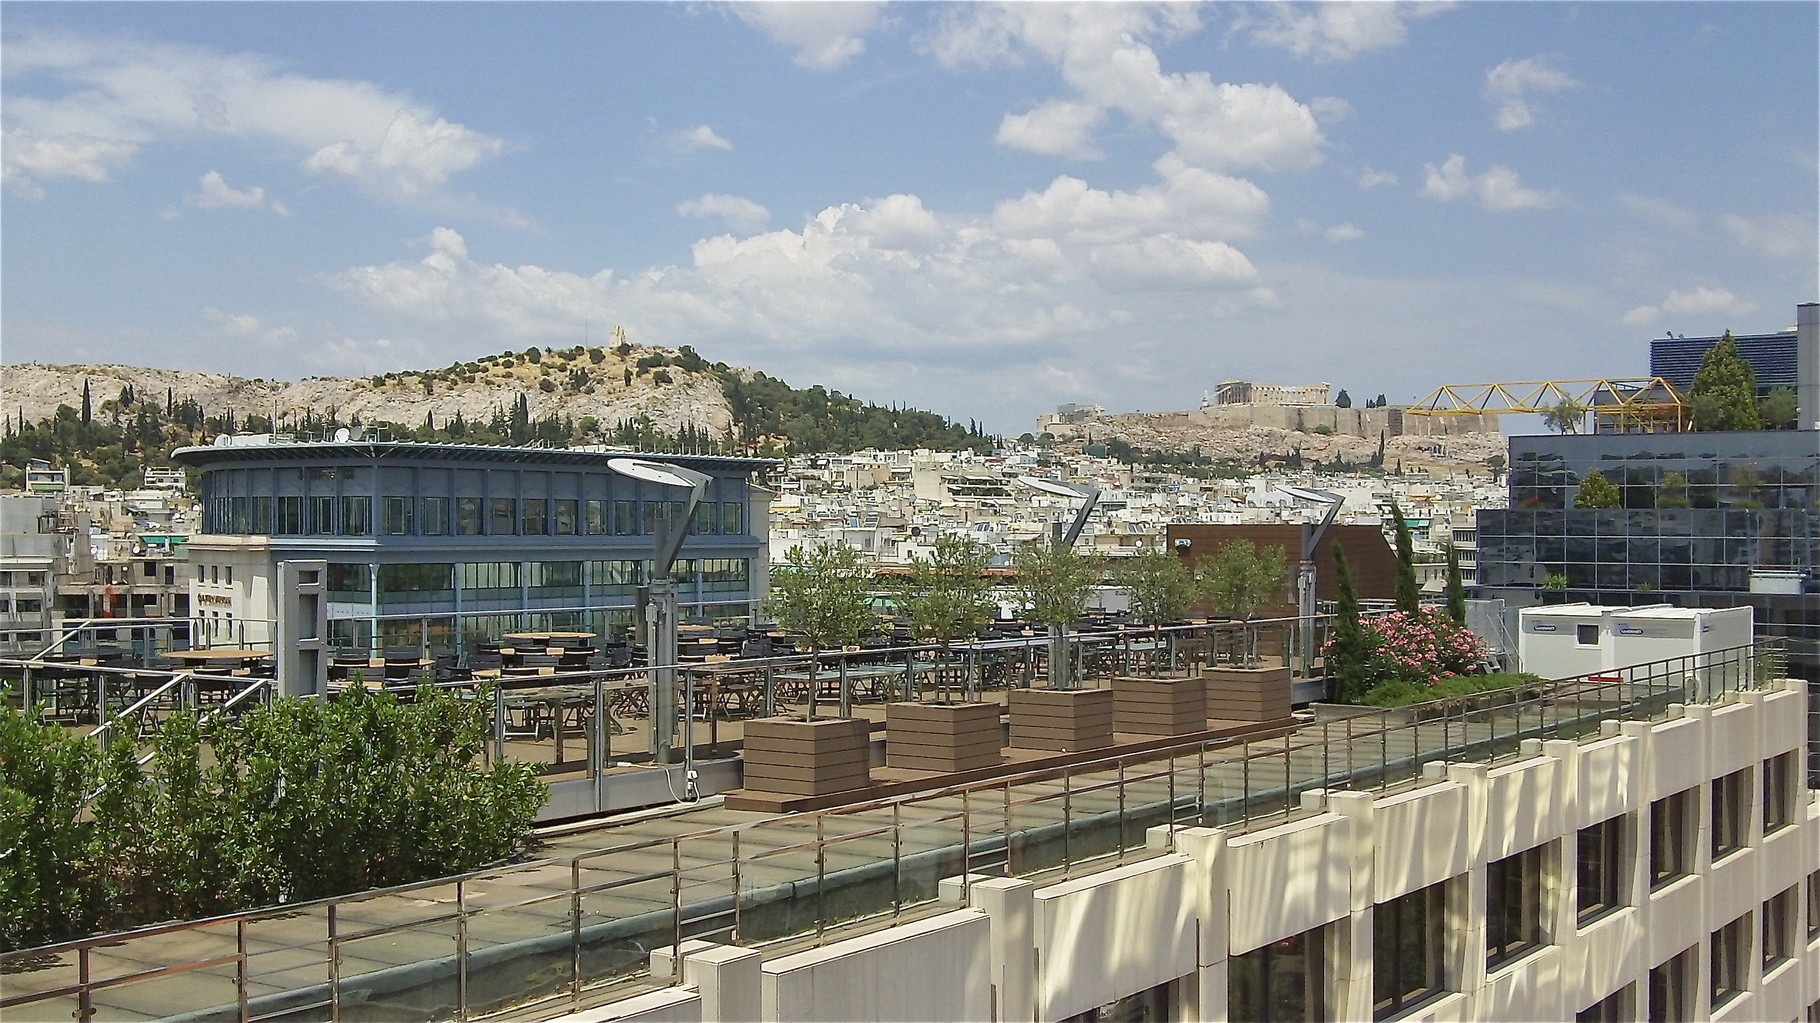 view of the Acropolis from our hotel room, Intercontinental Atheneum Athens!